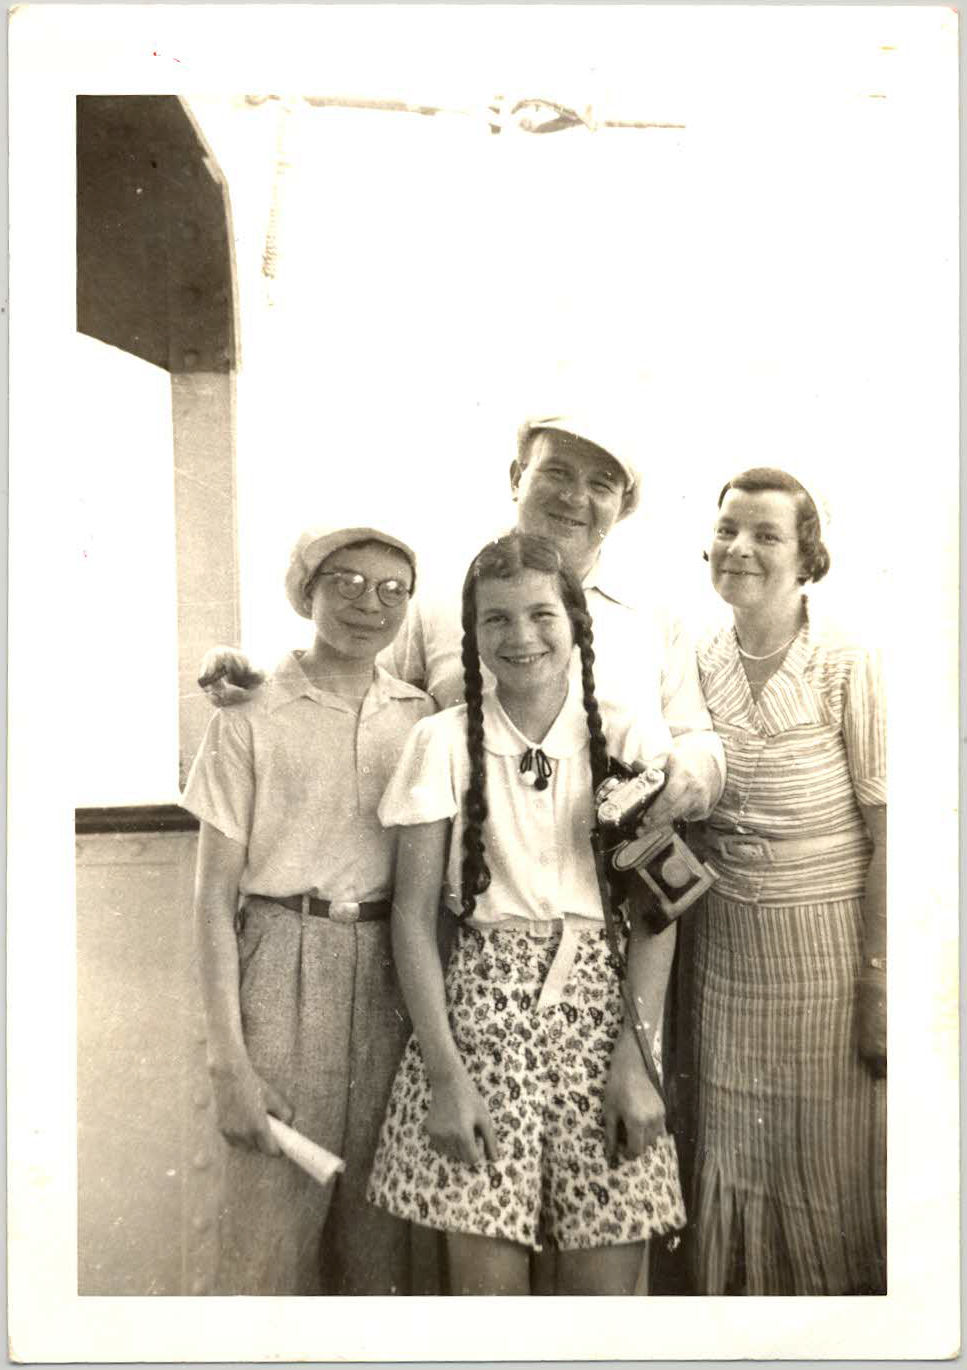 The Grunwald family (from left): Ernest, Lotte, Fred, and Trude